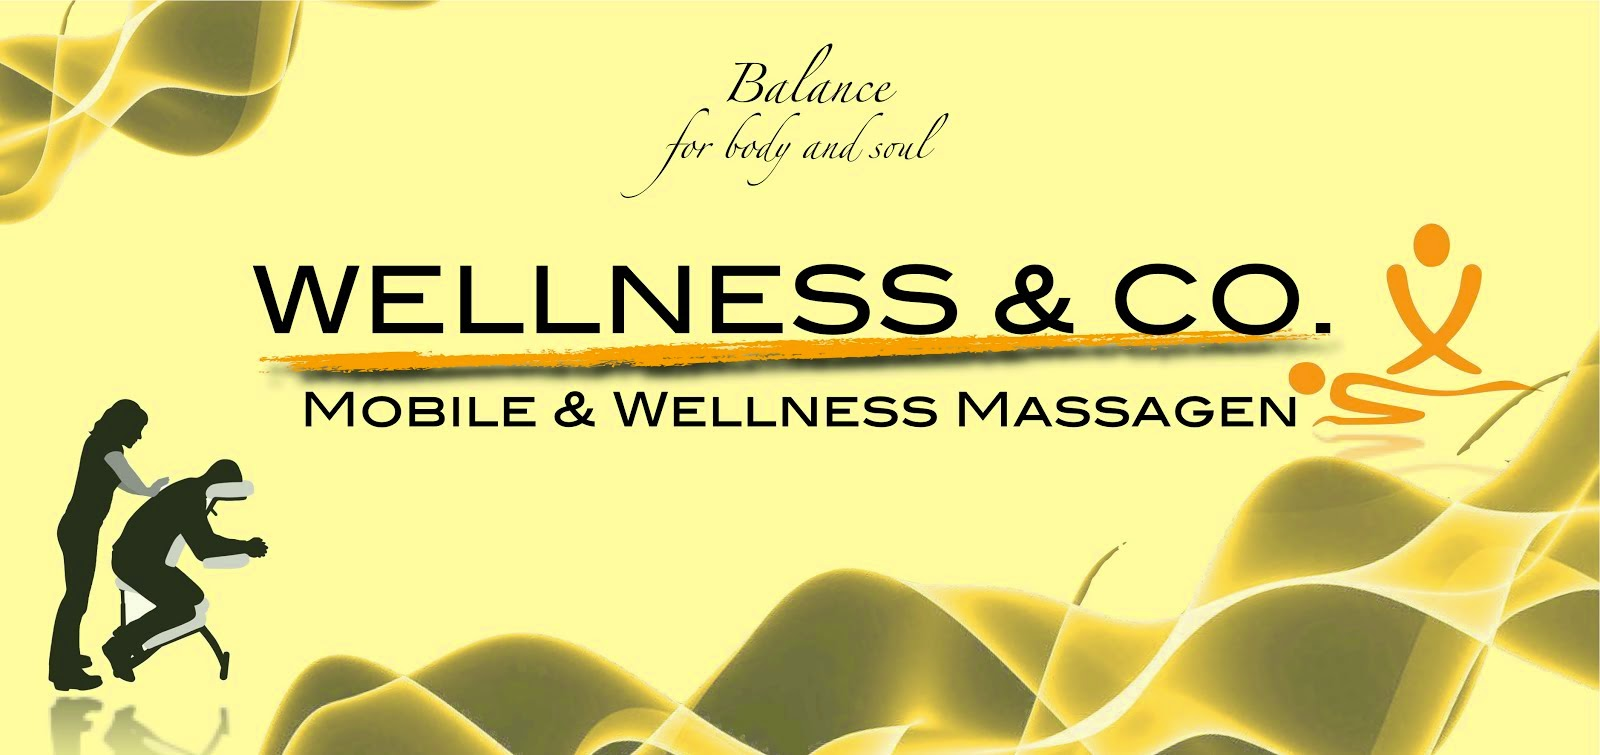 Wellness & Co.